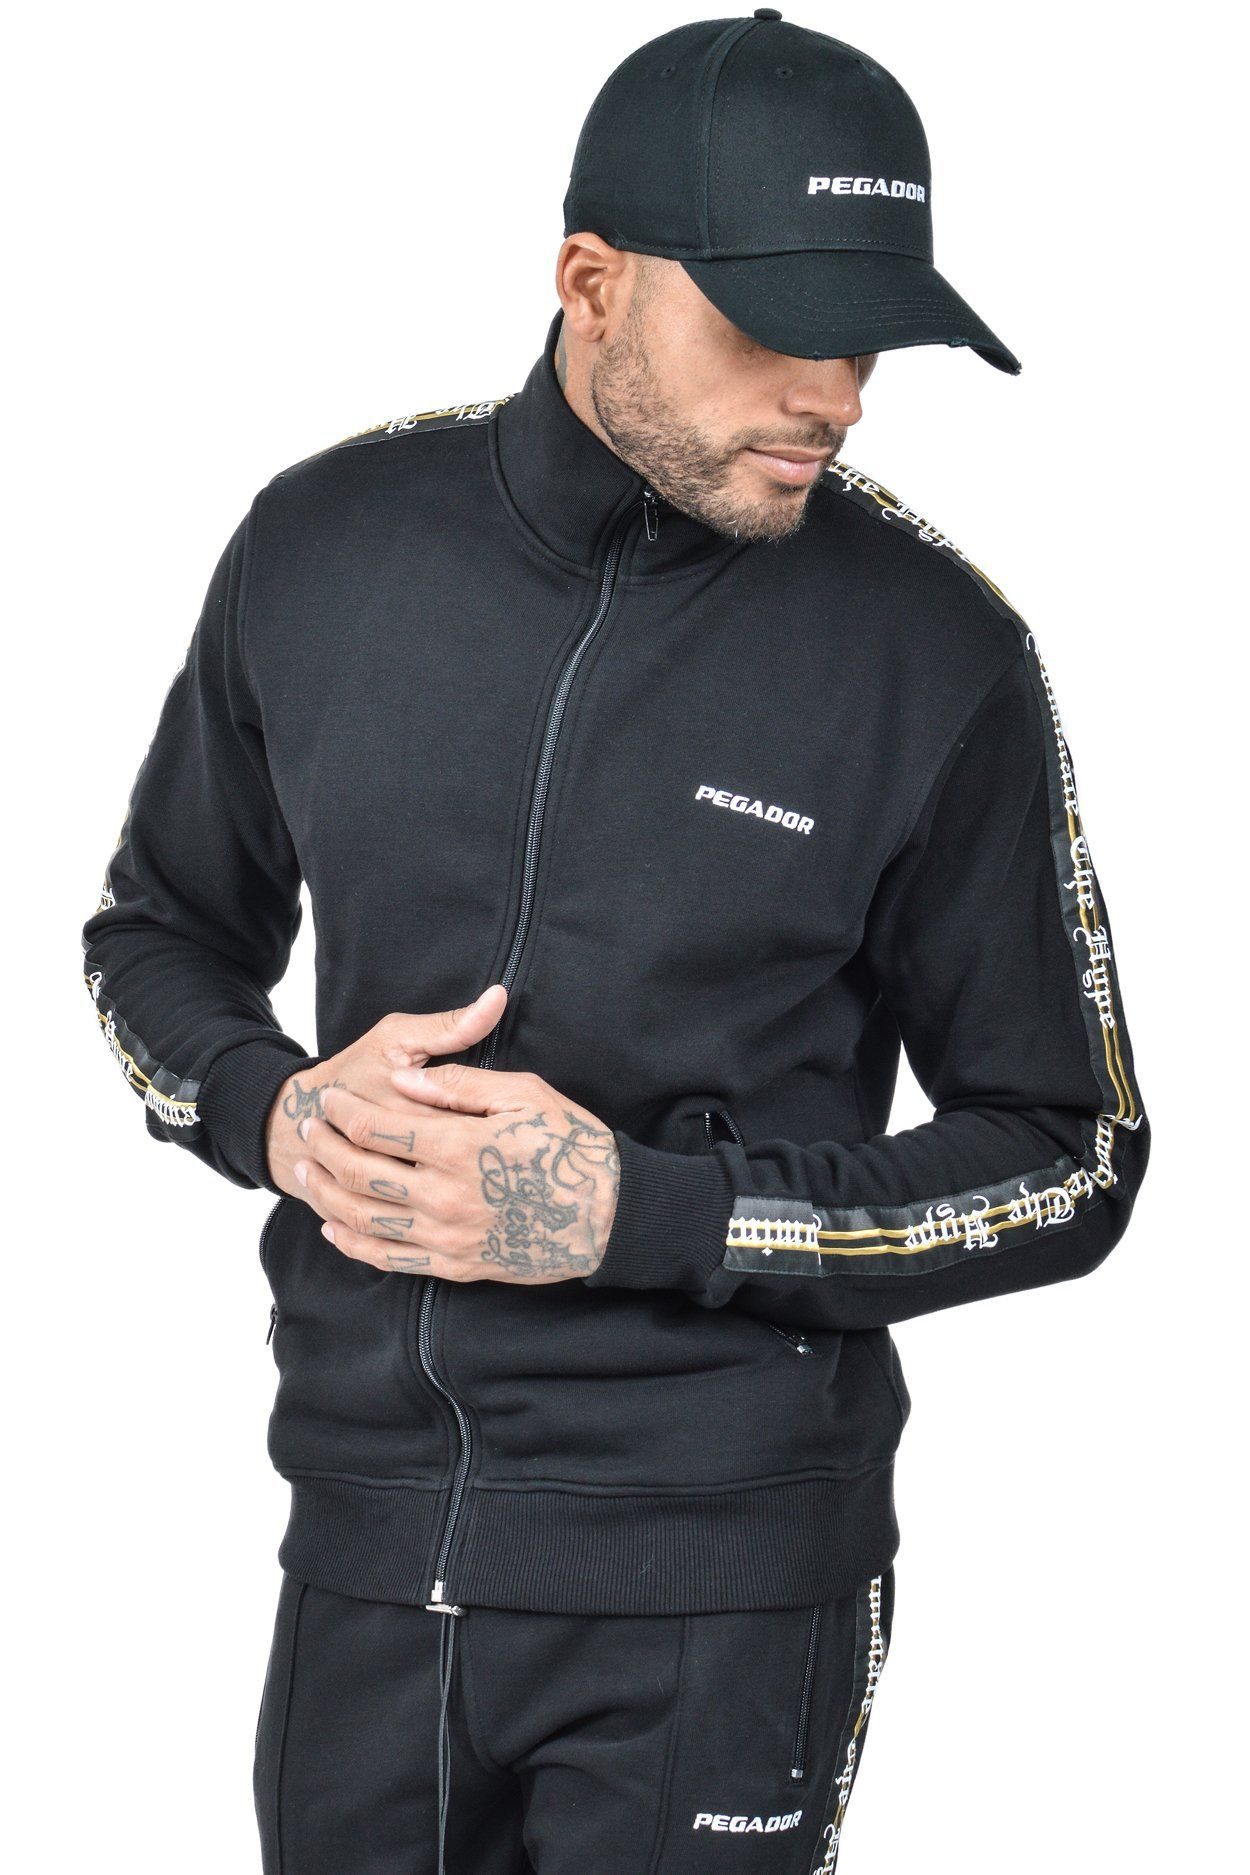 Plesto Sweat trackjacket Black SWEATER PEGADOR